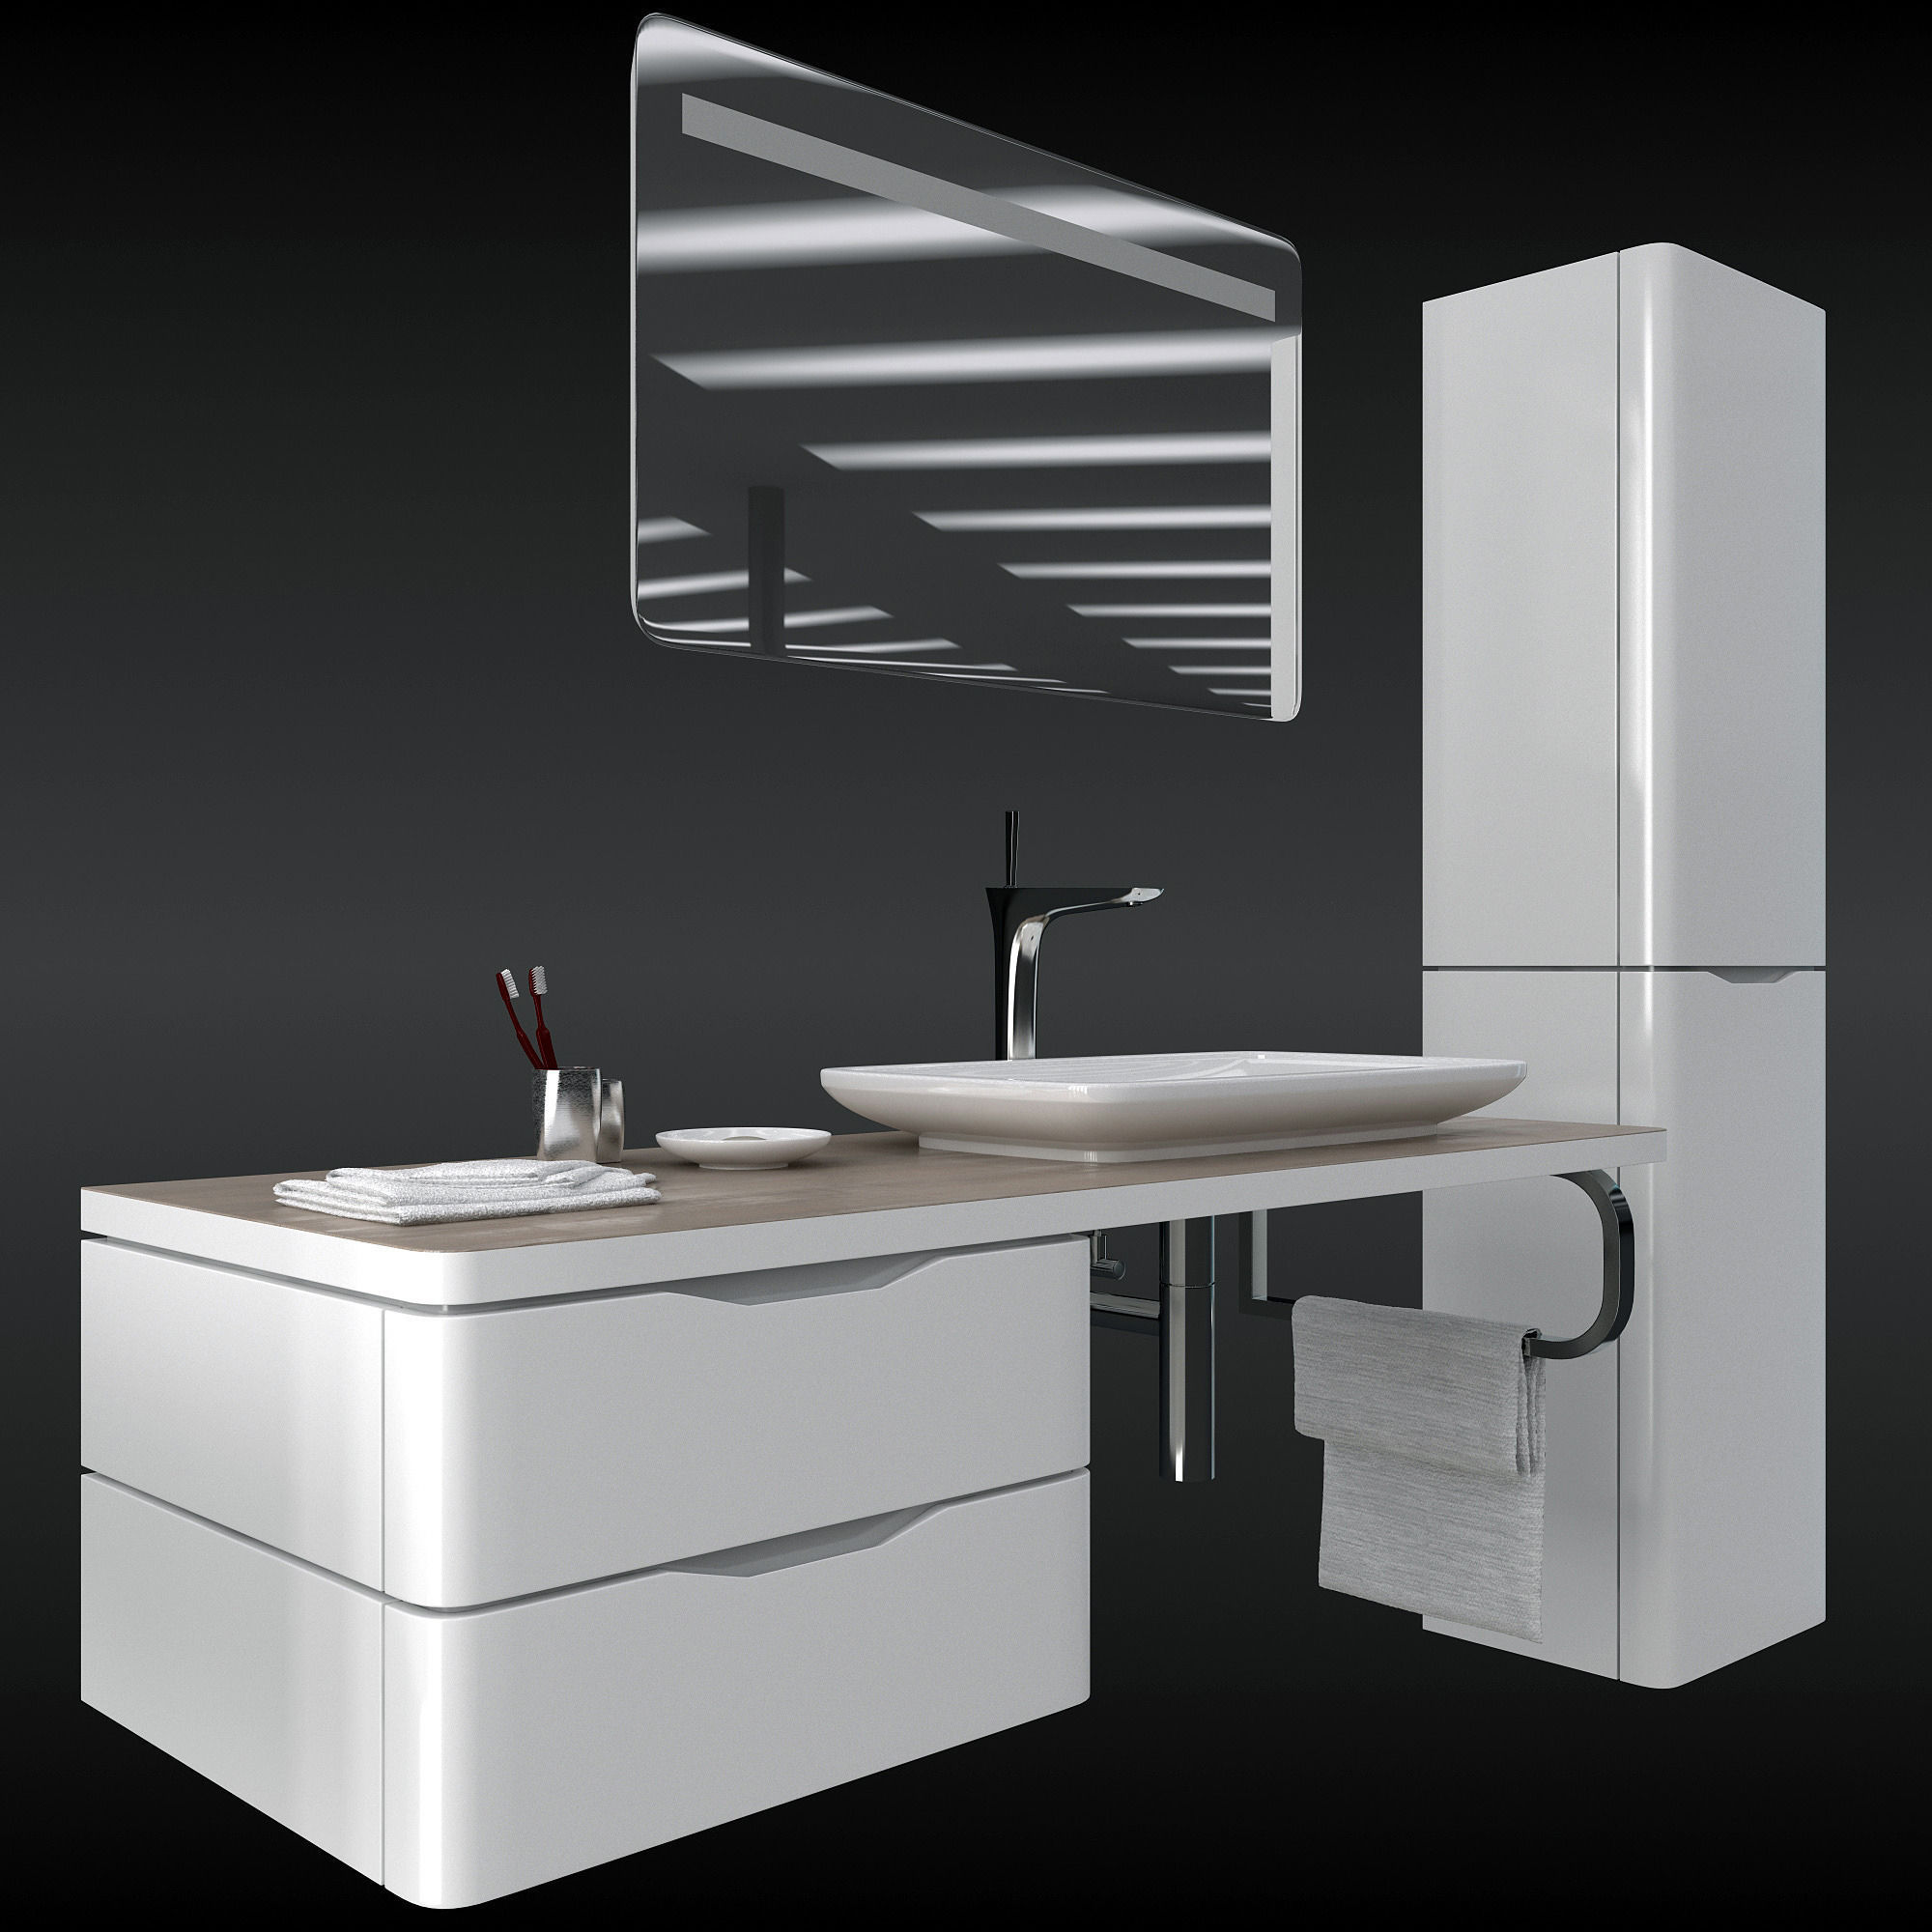 pin partners pedestal sink sanitaryware foster duravit projects